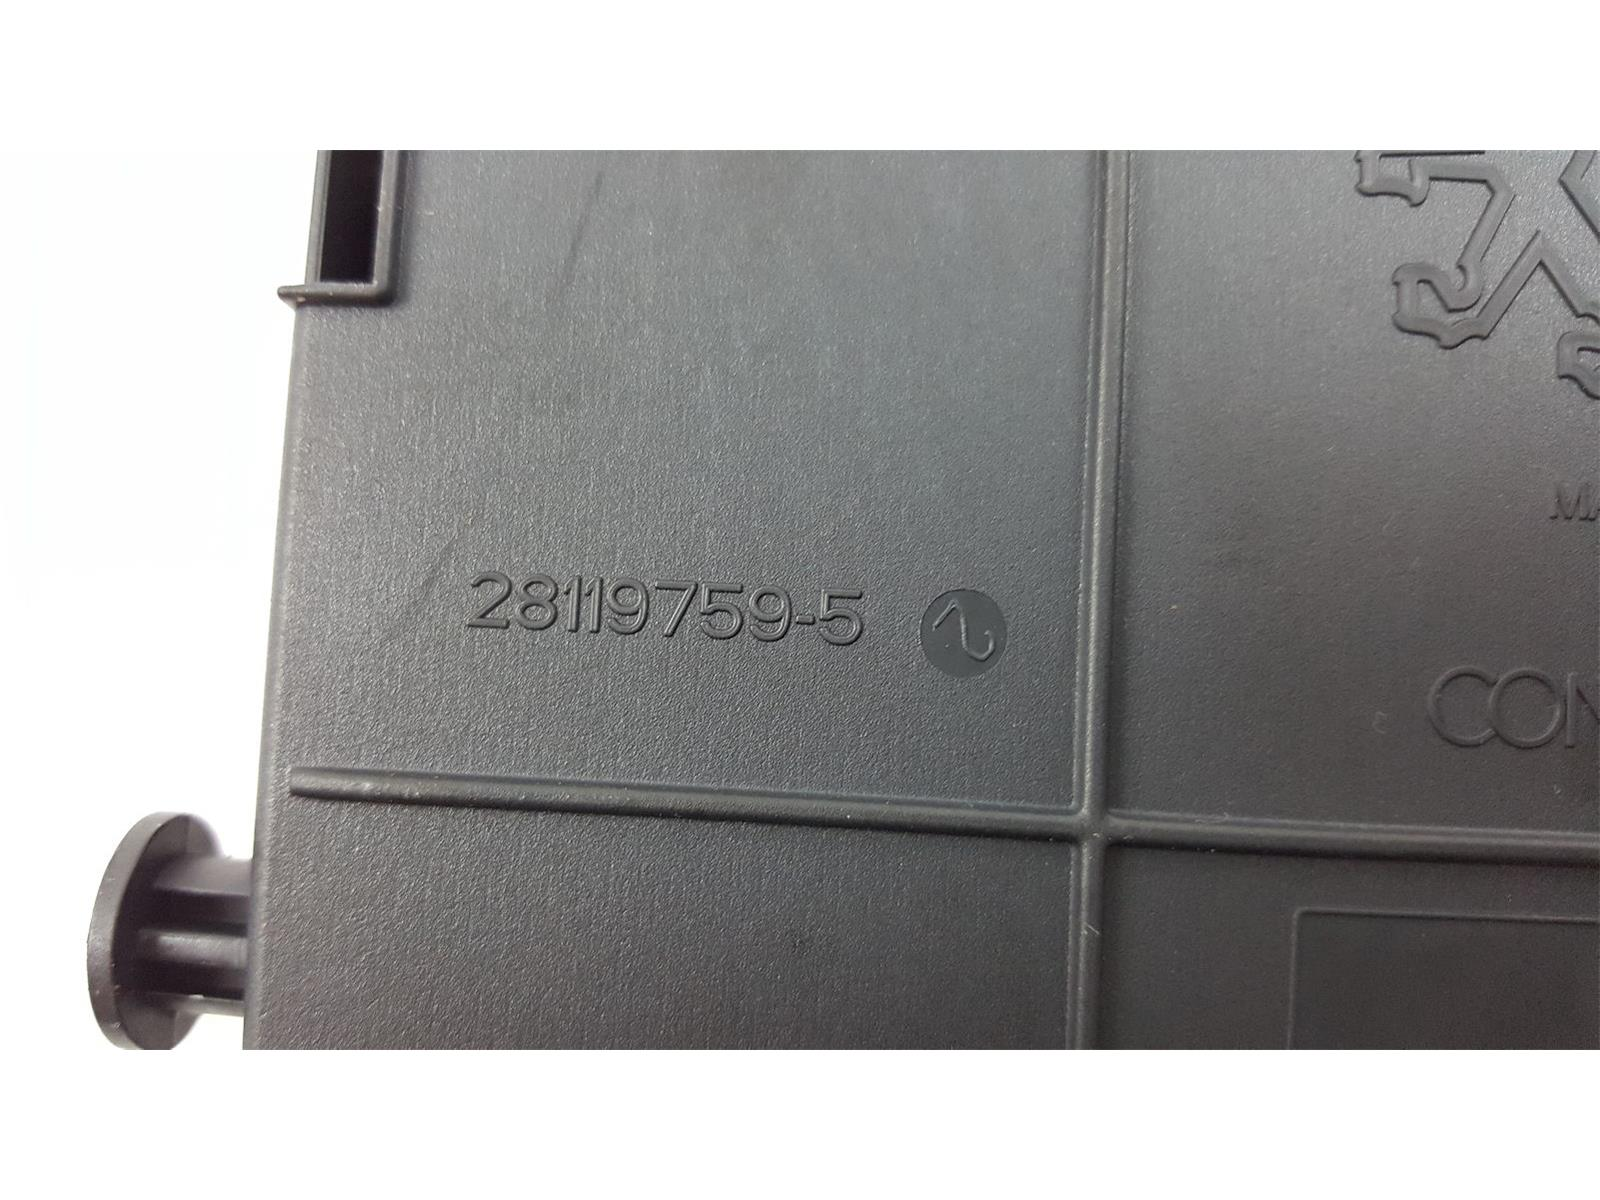 Peugeot Partner 2015 On Fuse Box Diesel Manual For Sale From Scb 207 Mk2 28119759 5 16